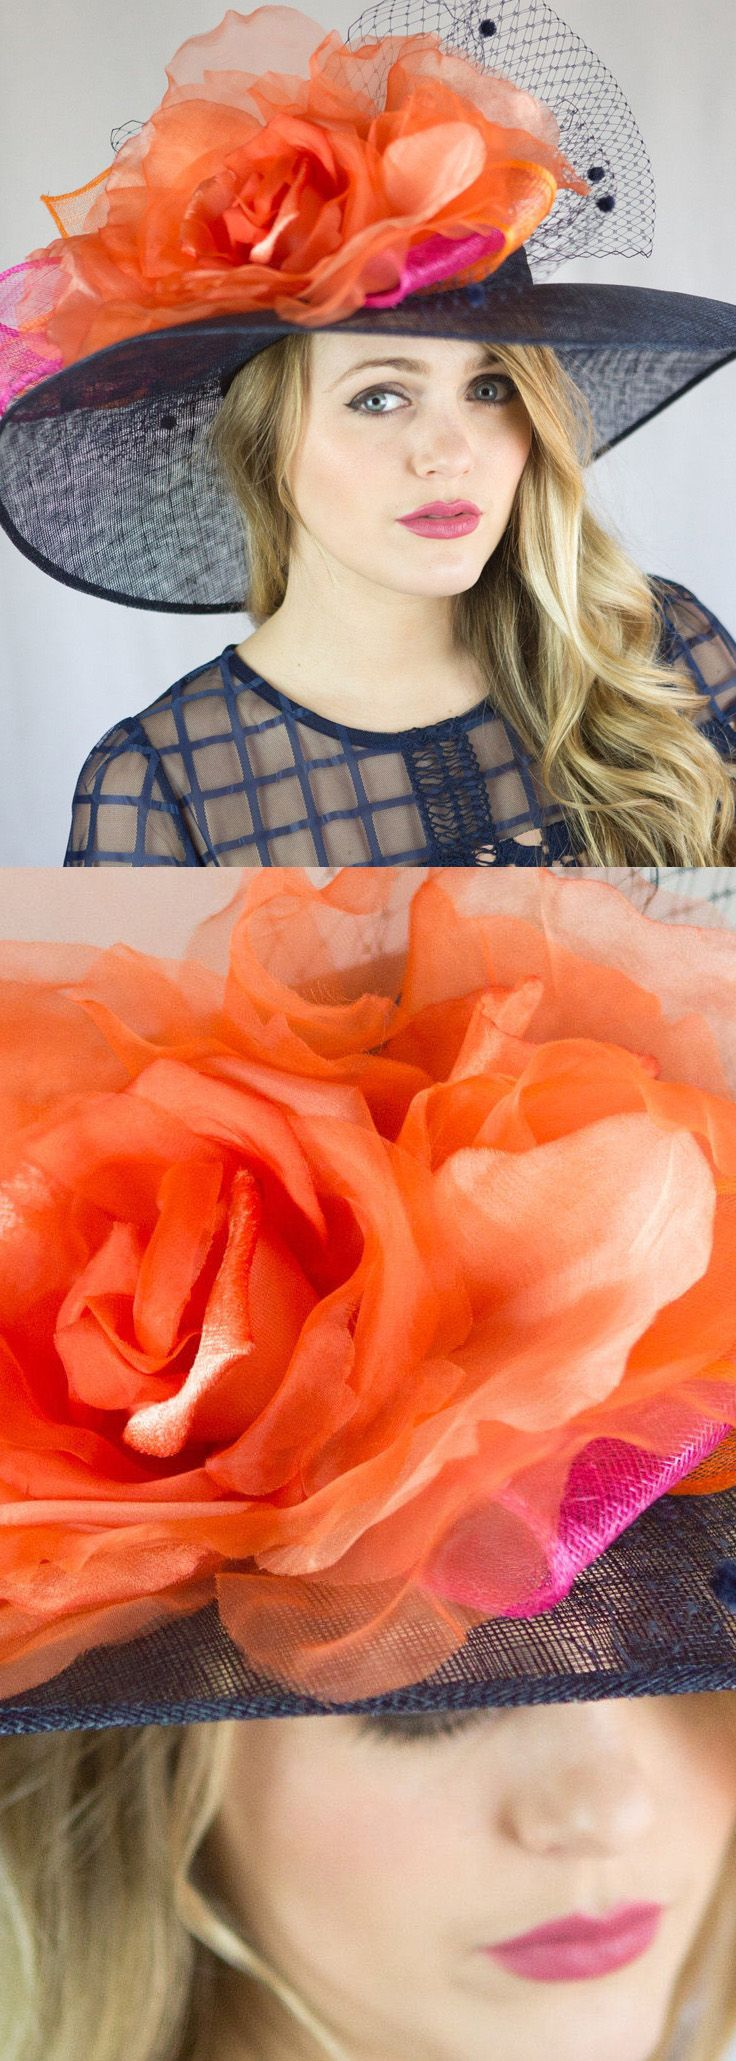 Orange and Navy Floral Kentucky Derby hat a perfect headpiece for Kentucky Derby, Oaks, or Royal Ascot Race Day outfit, or fun hat for mother of the bride in Bright Orange Silk Flower and Navy. Outfit inspiration ideas for spring wedding on day at the races outfits. #weddings #weddingplanning #motherofthebride #kentuckyderbyfashion #royalascot #derbydayoutfits #kentuckyderbyparty #motherofthegroom #springwedding #weddingideas #weddinginspiration #affiliatelink #fashion #fashionista